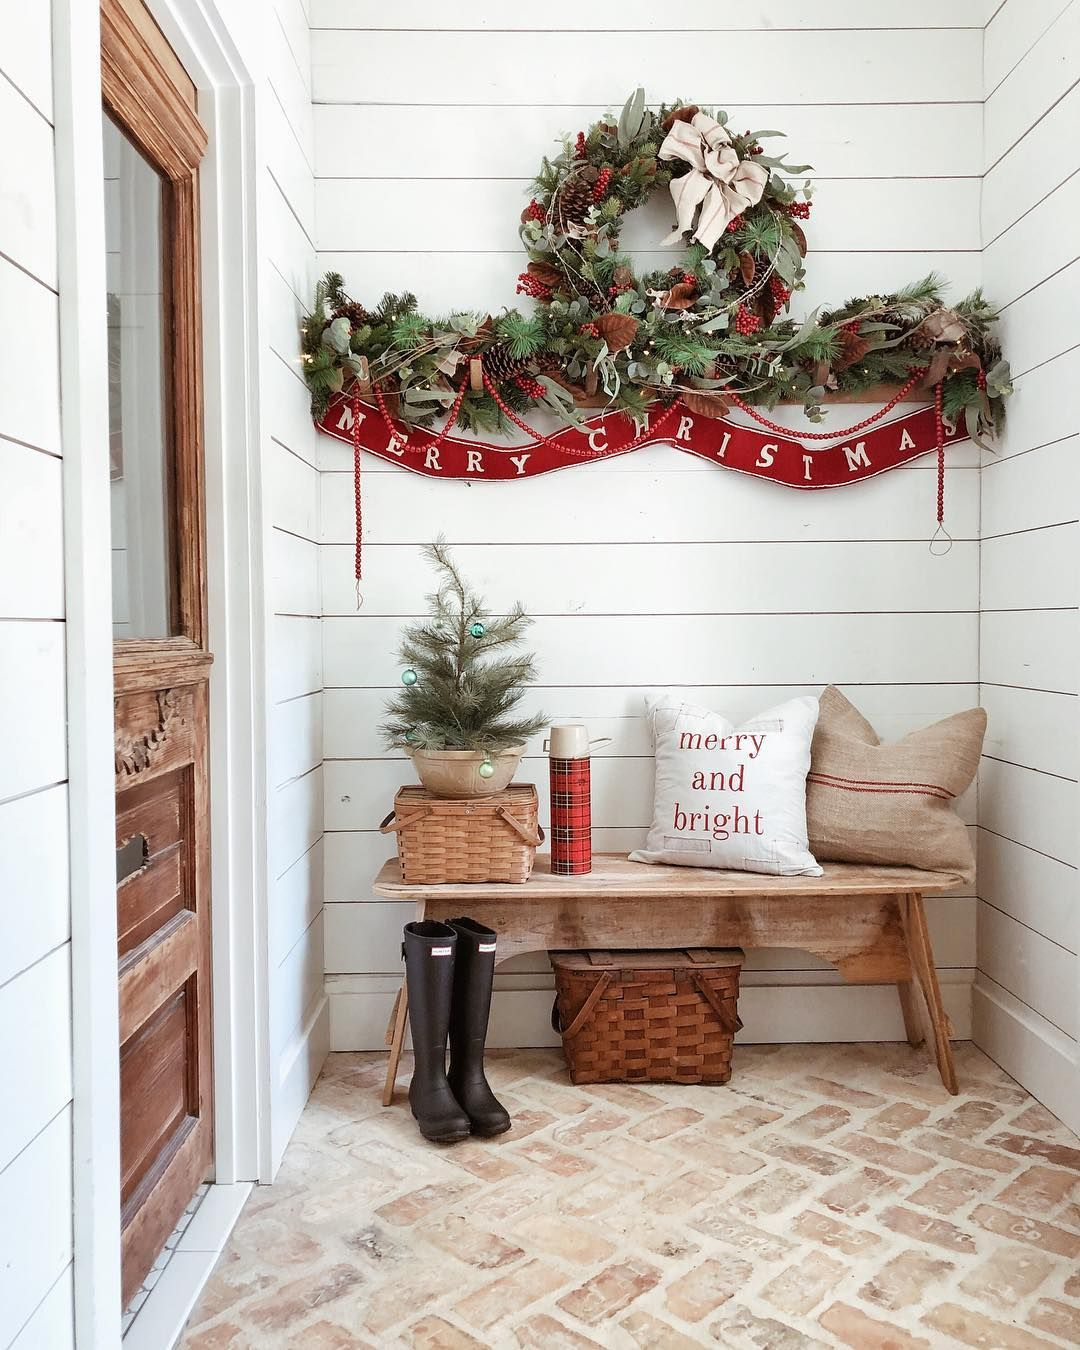 Festive Christmas wreath with Wooden Farmhouse Bench at the Entryway @whitetailfarmhouse #ChristmasDecor #ChristmasHome